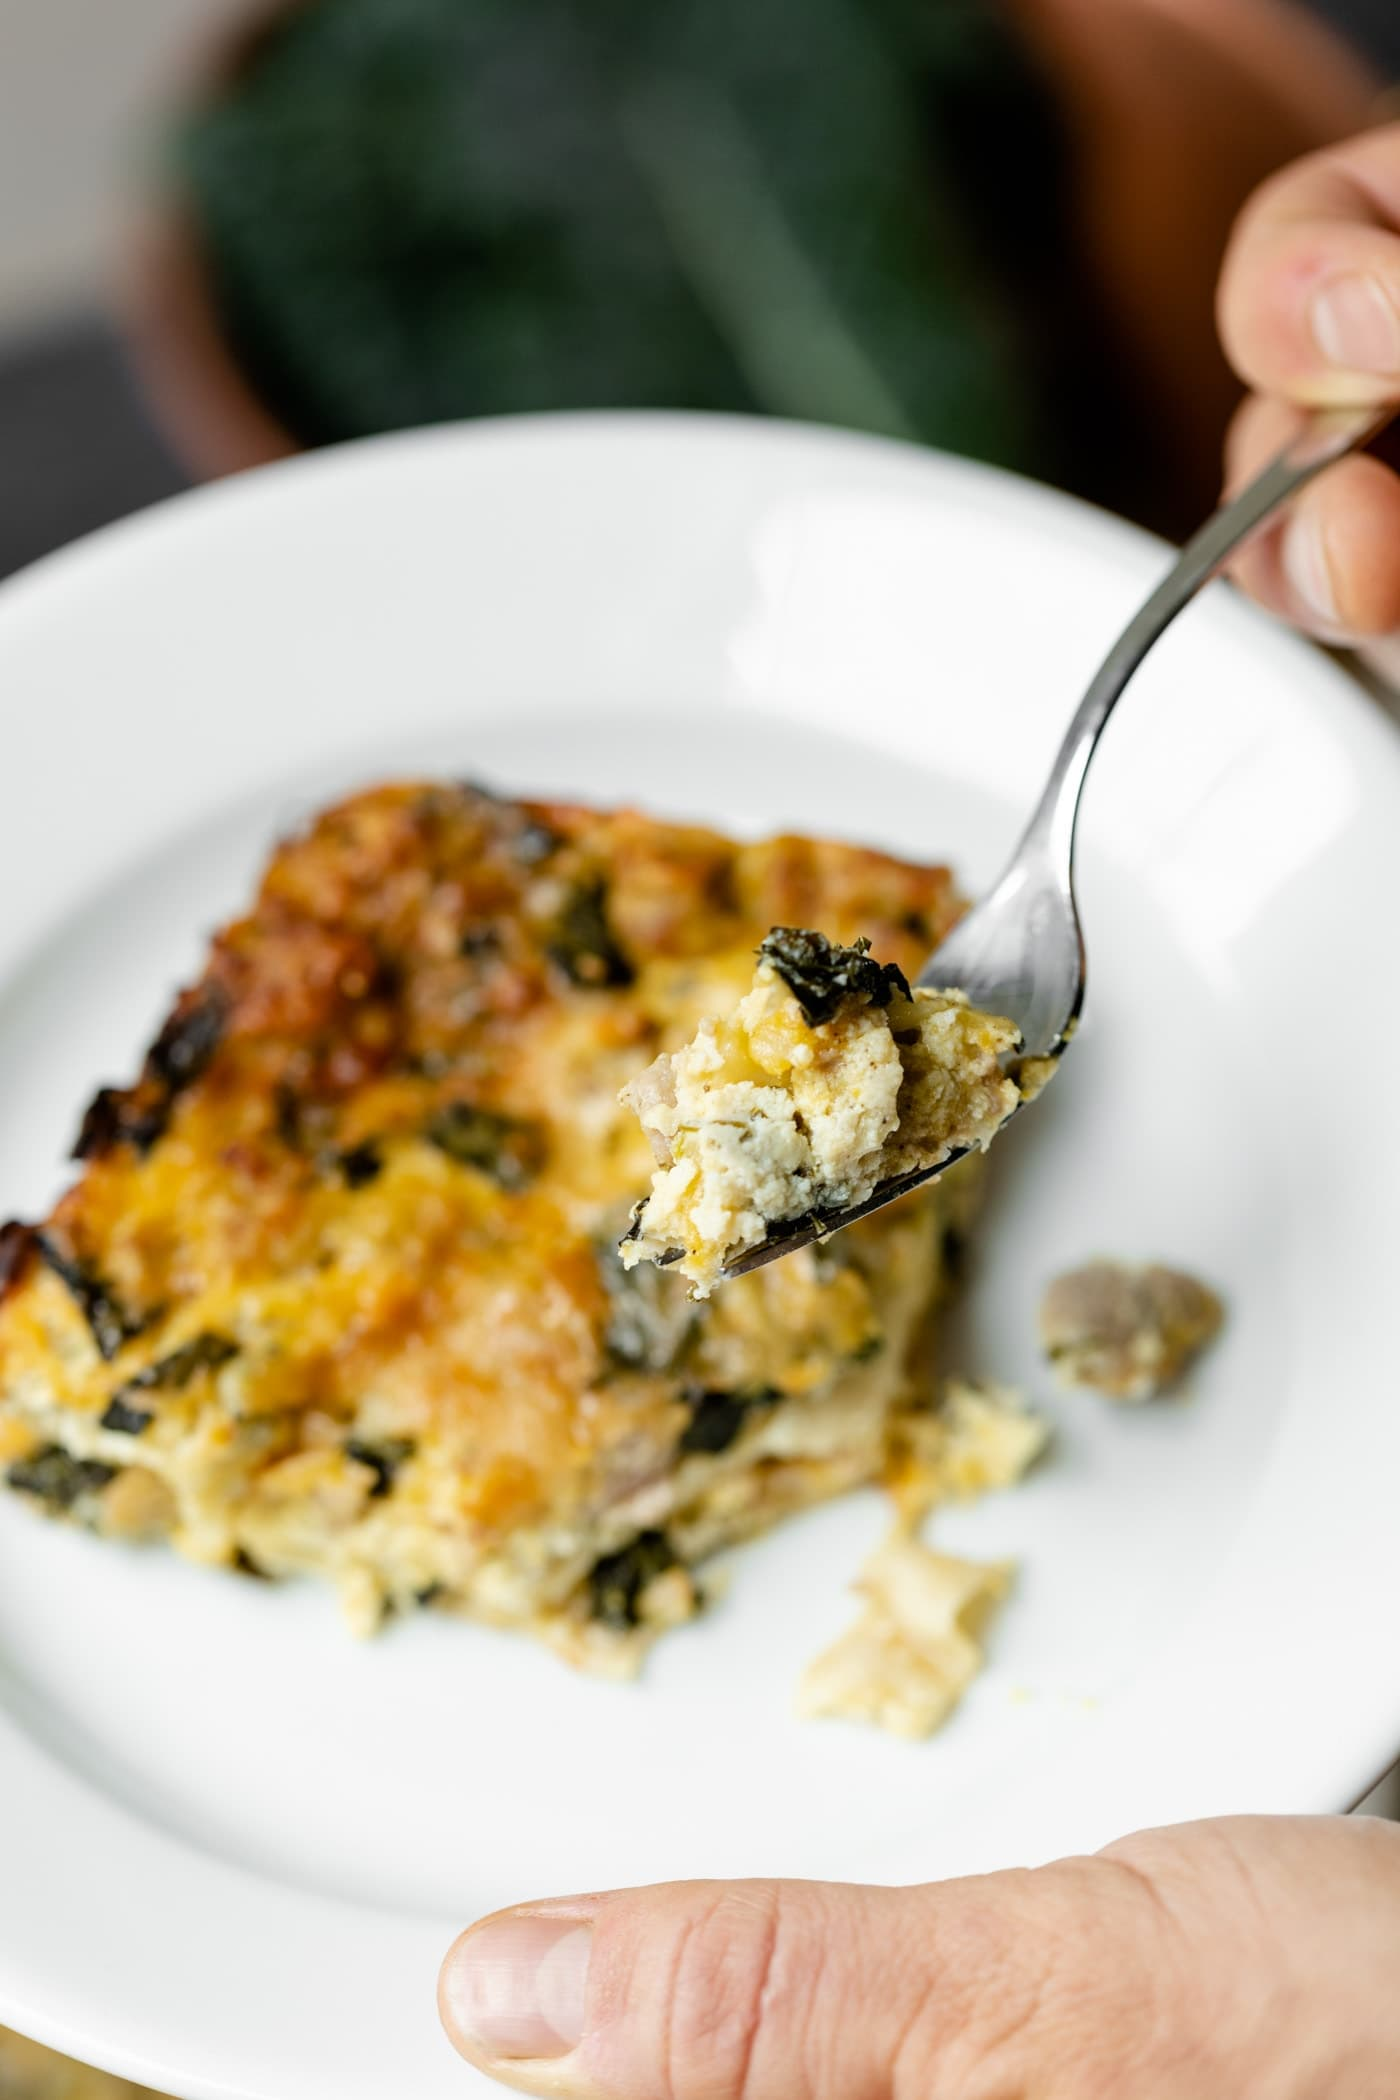 Piece of squash kale lasagna held by hand on a white plate with fork holding piece of dish with copper pot and kale in background on gray slate surface